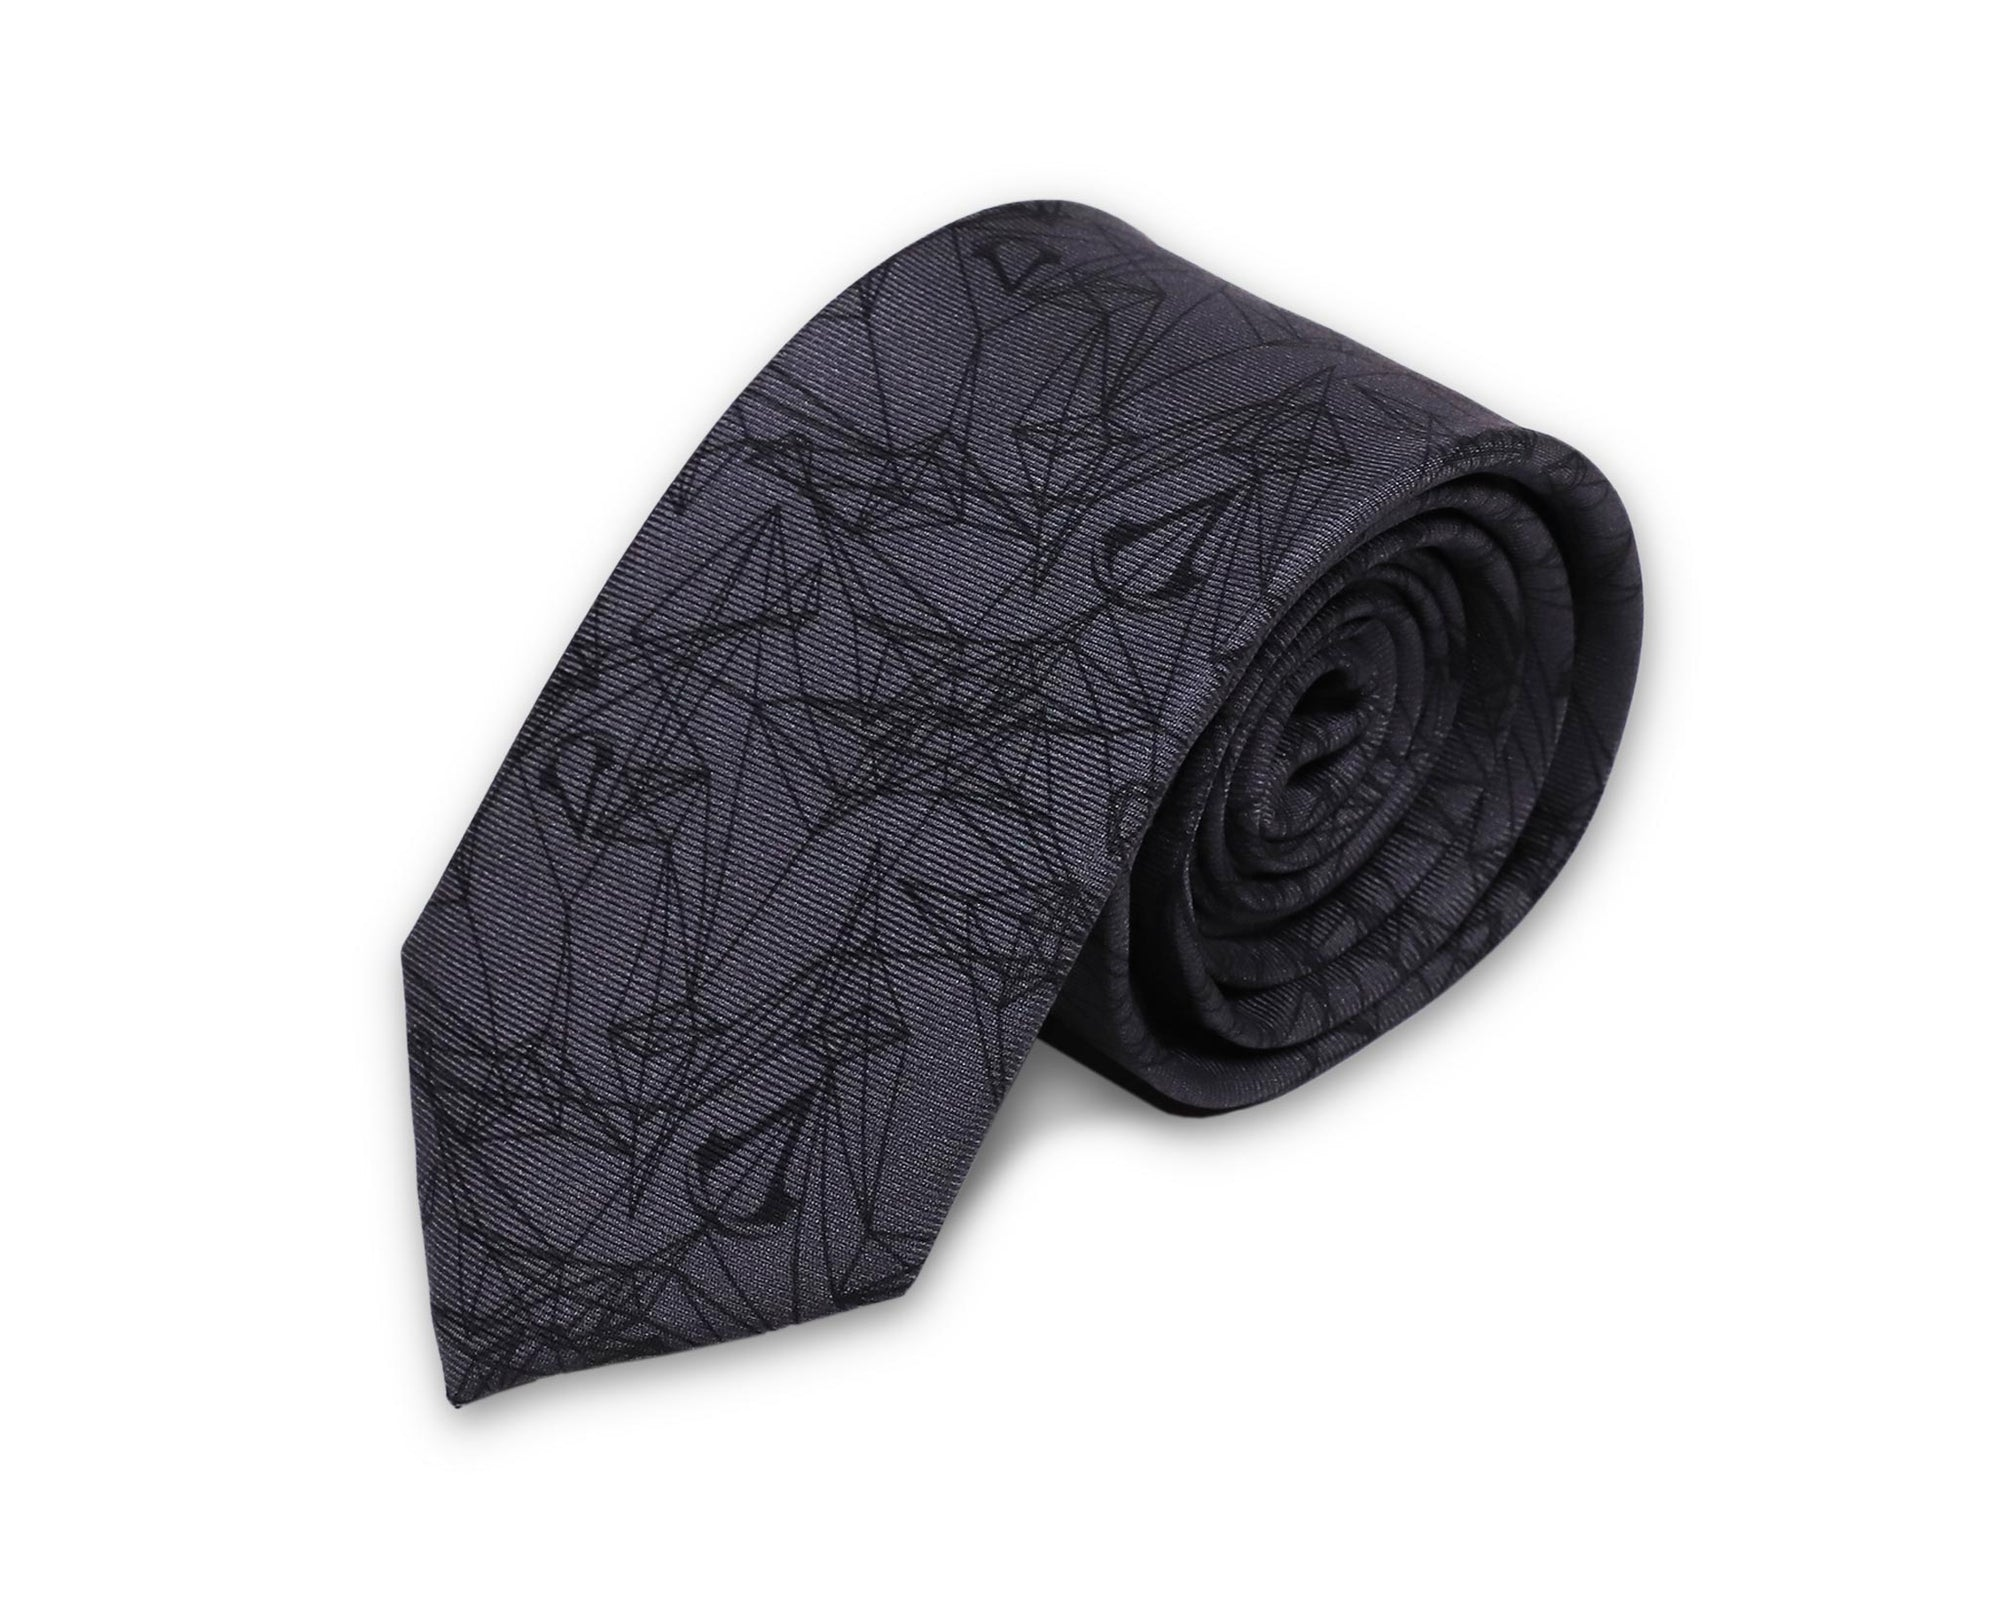 Tie 2.0 - Assassin's Creed Legacy - Black